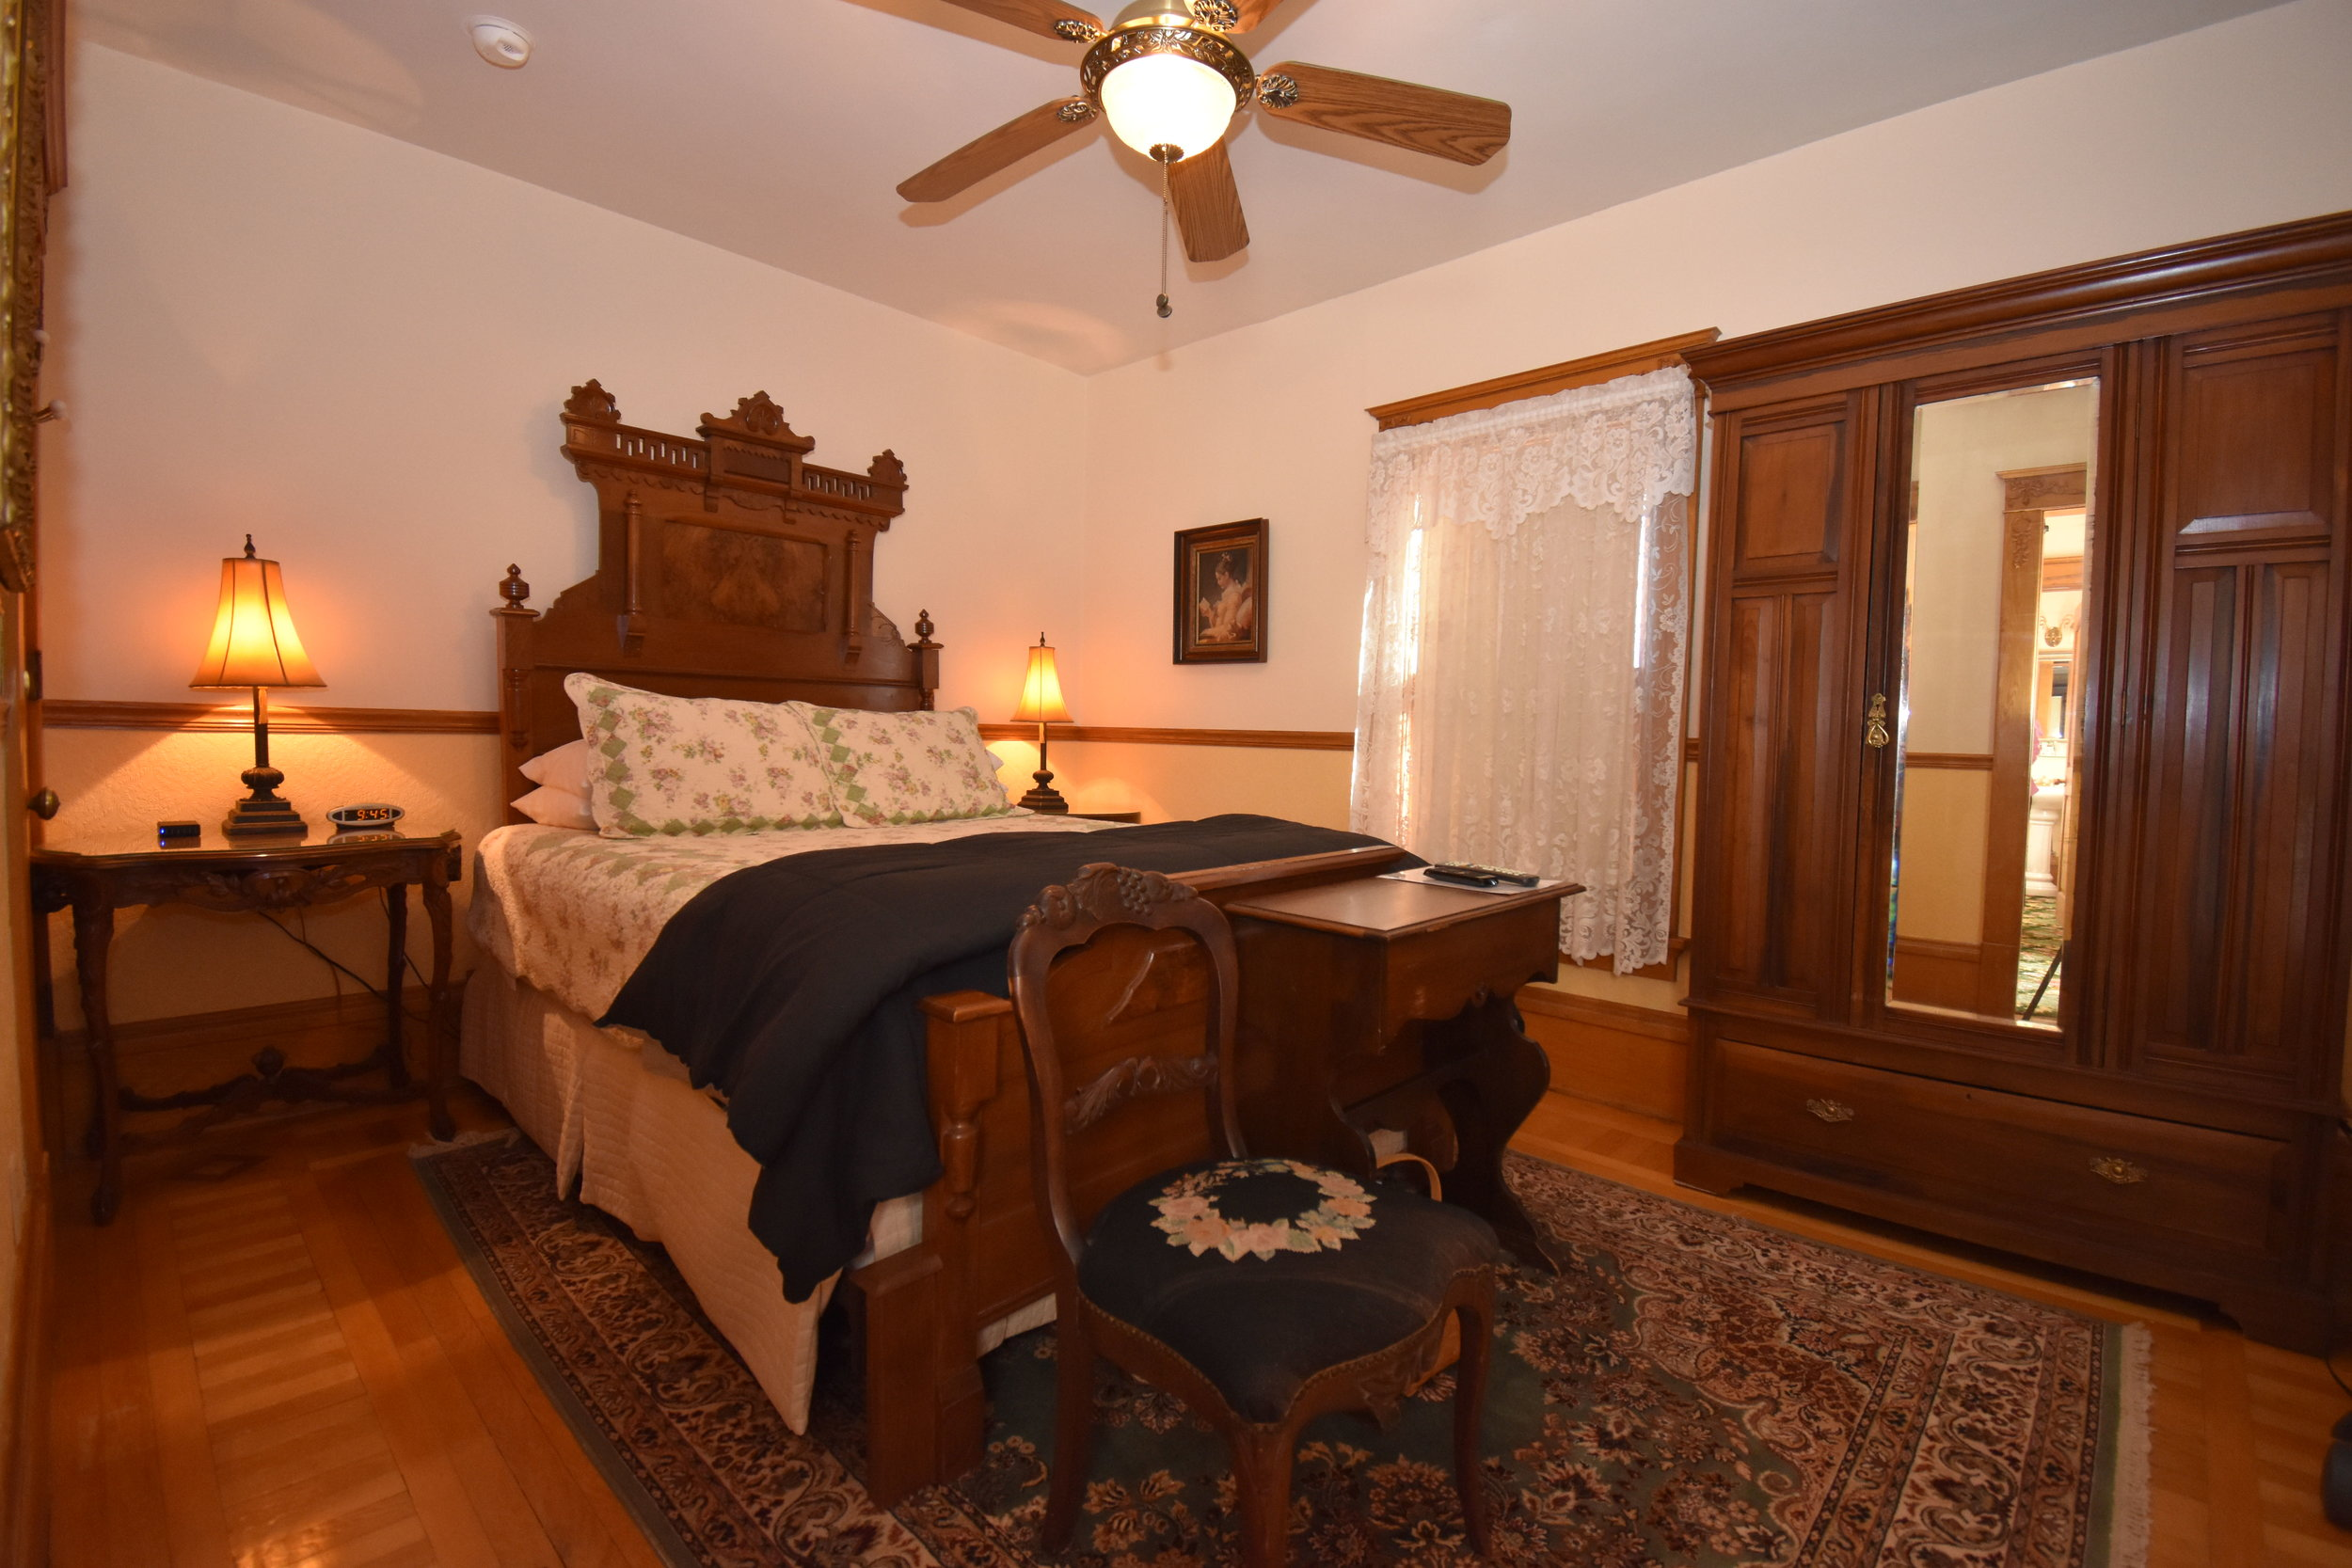 Queen size bed with armoire